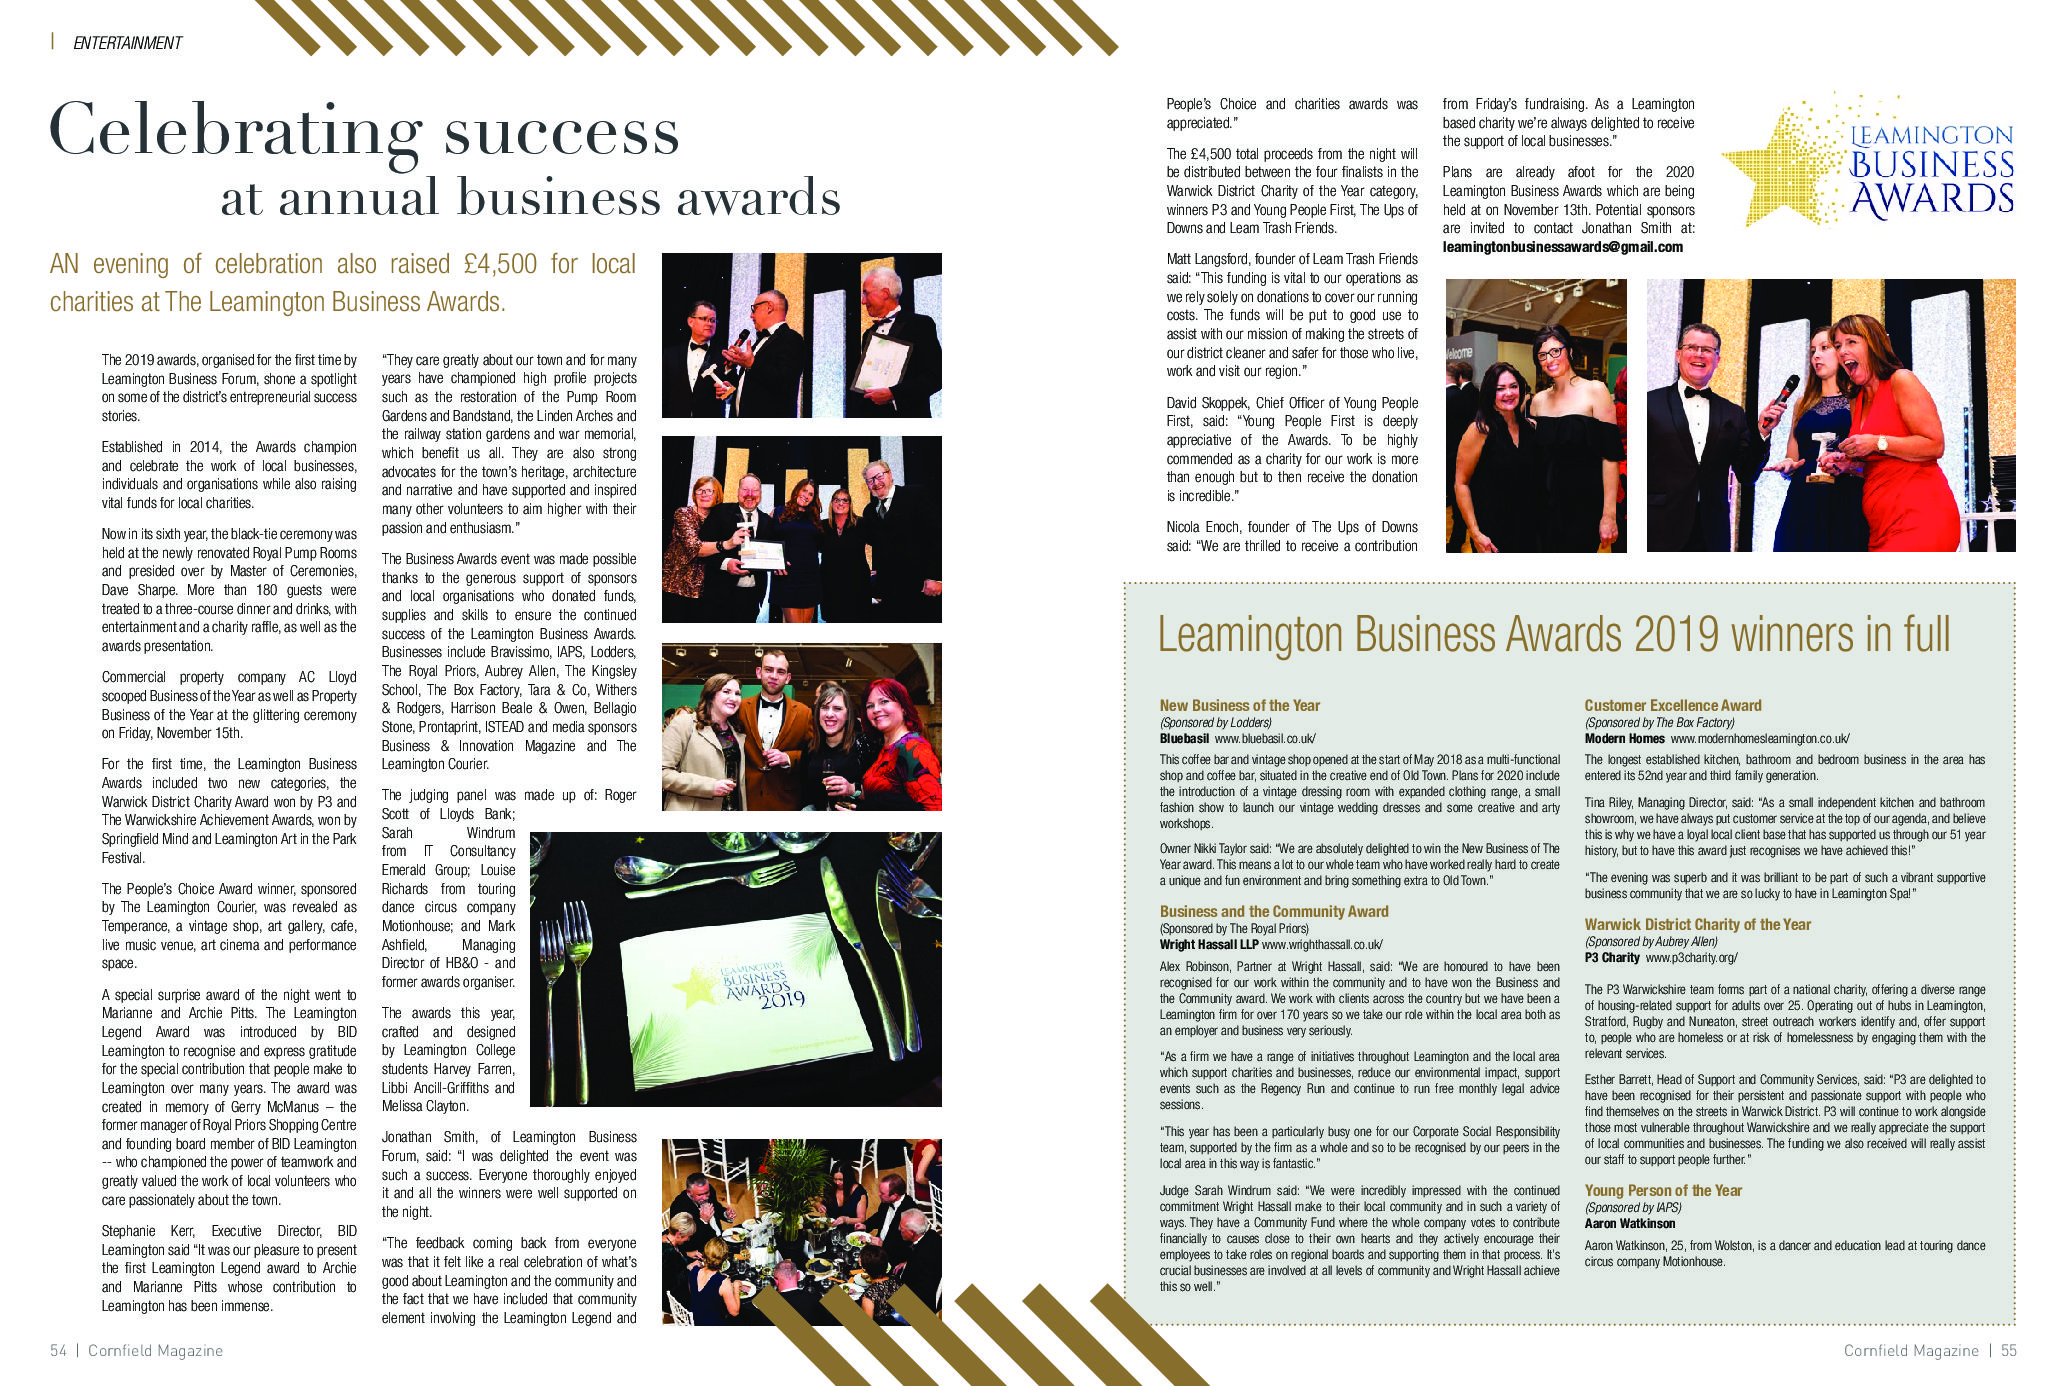 Awards Cornfield